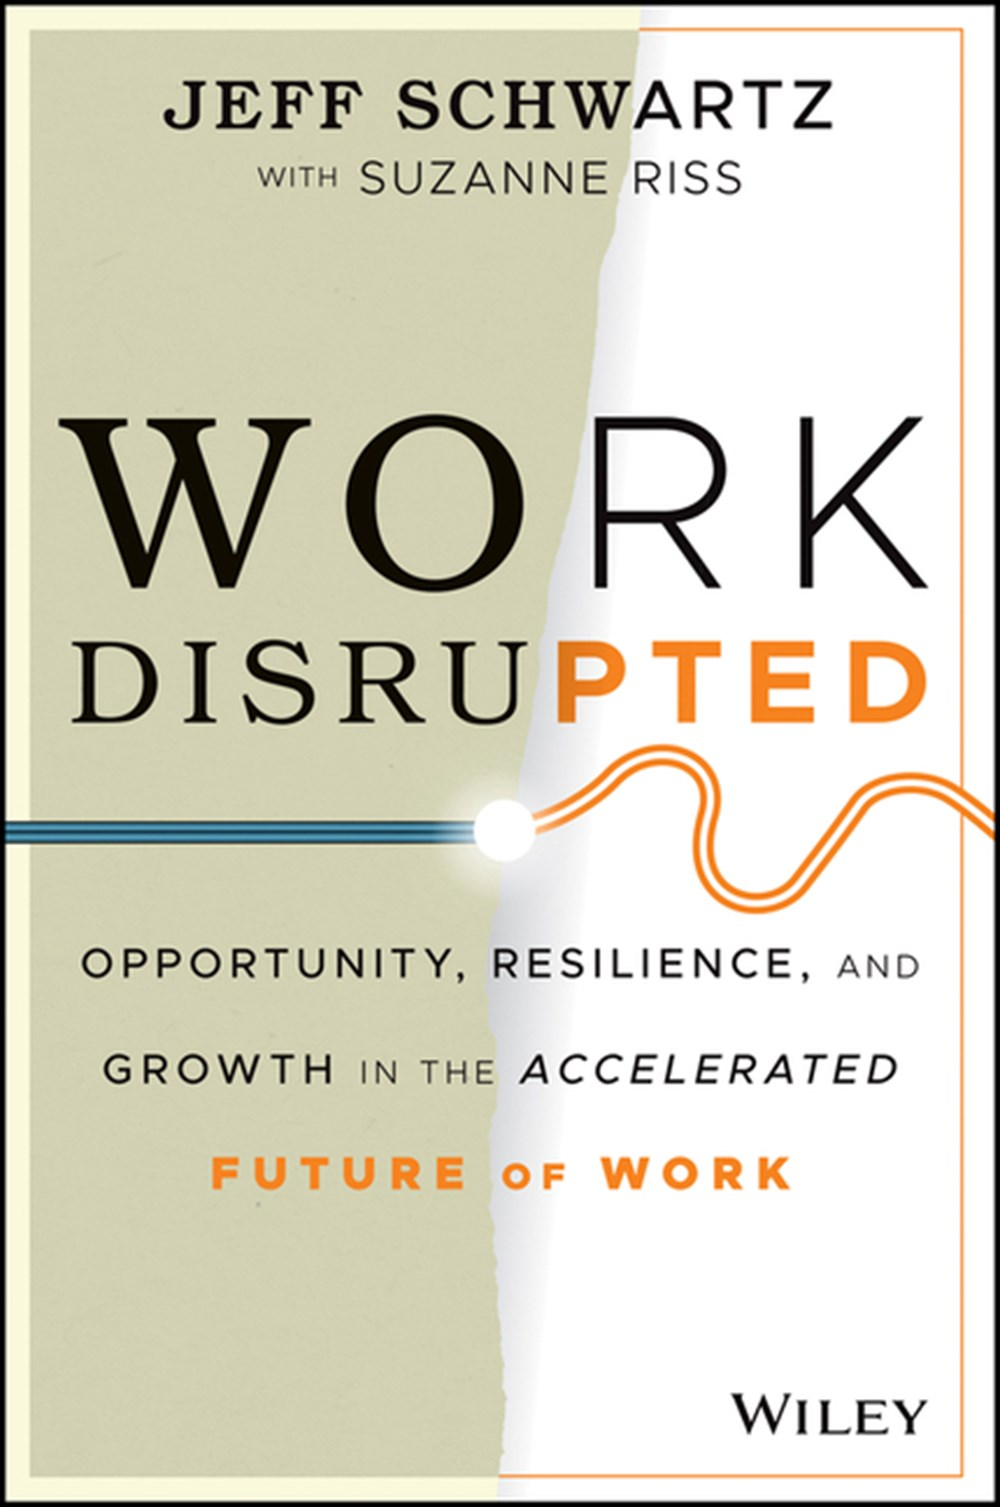 Work Disrupted Opportunity, Resilience, and Growth in the Accelerated Future of Work